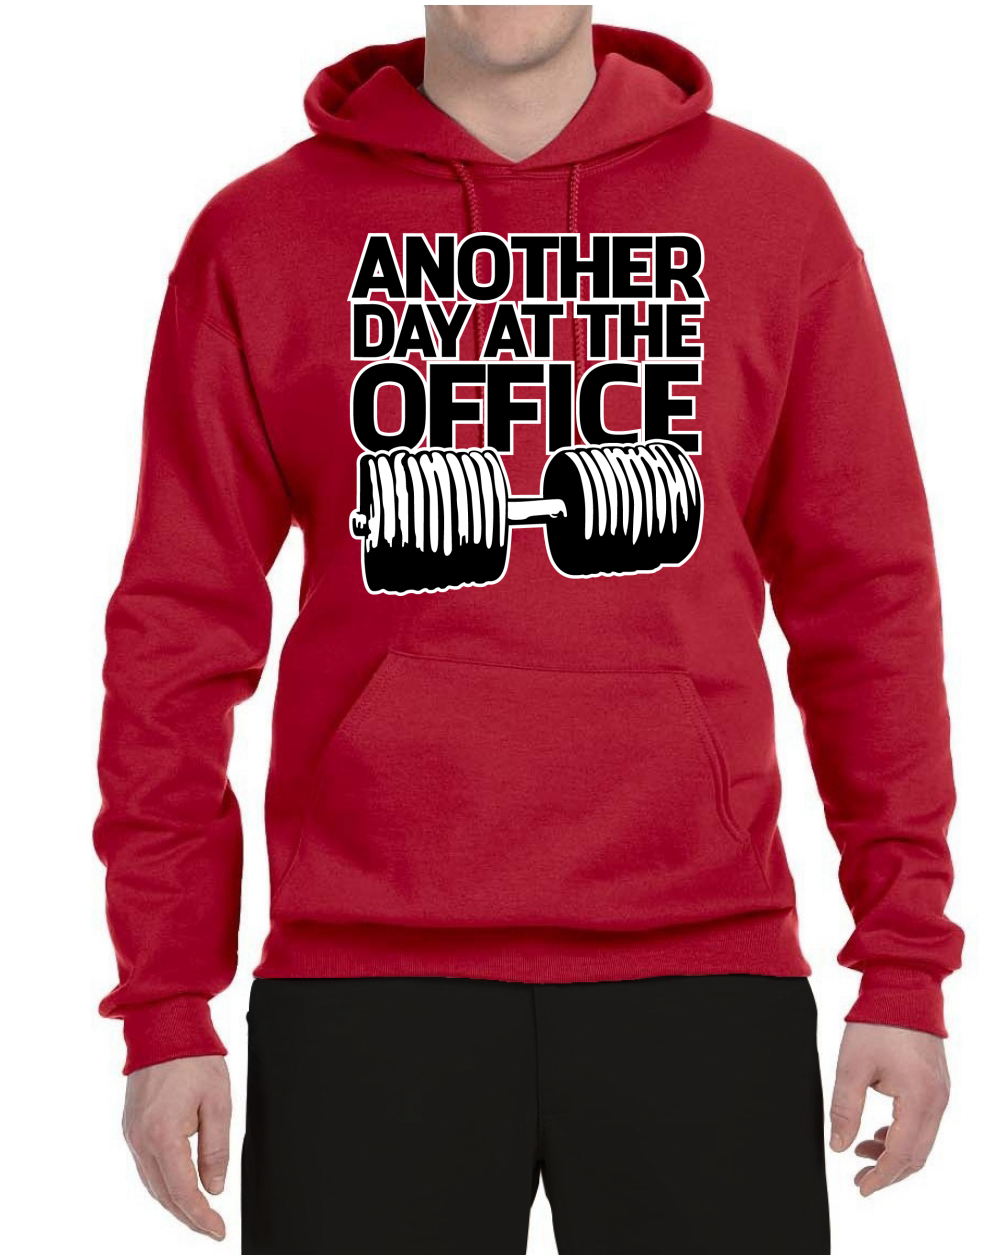 Another Day at the Office Mens Gym Sweatshirt Graphic Workout Hoodie